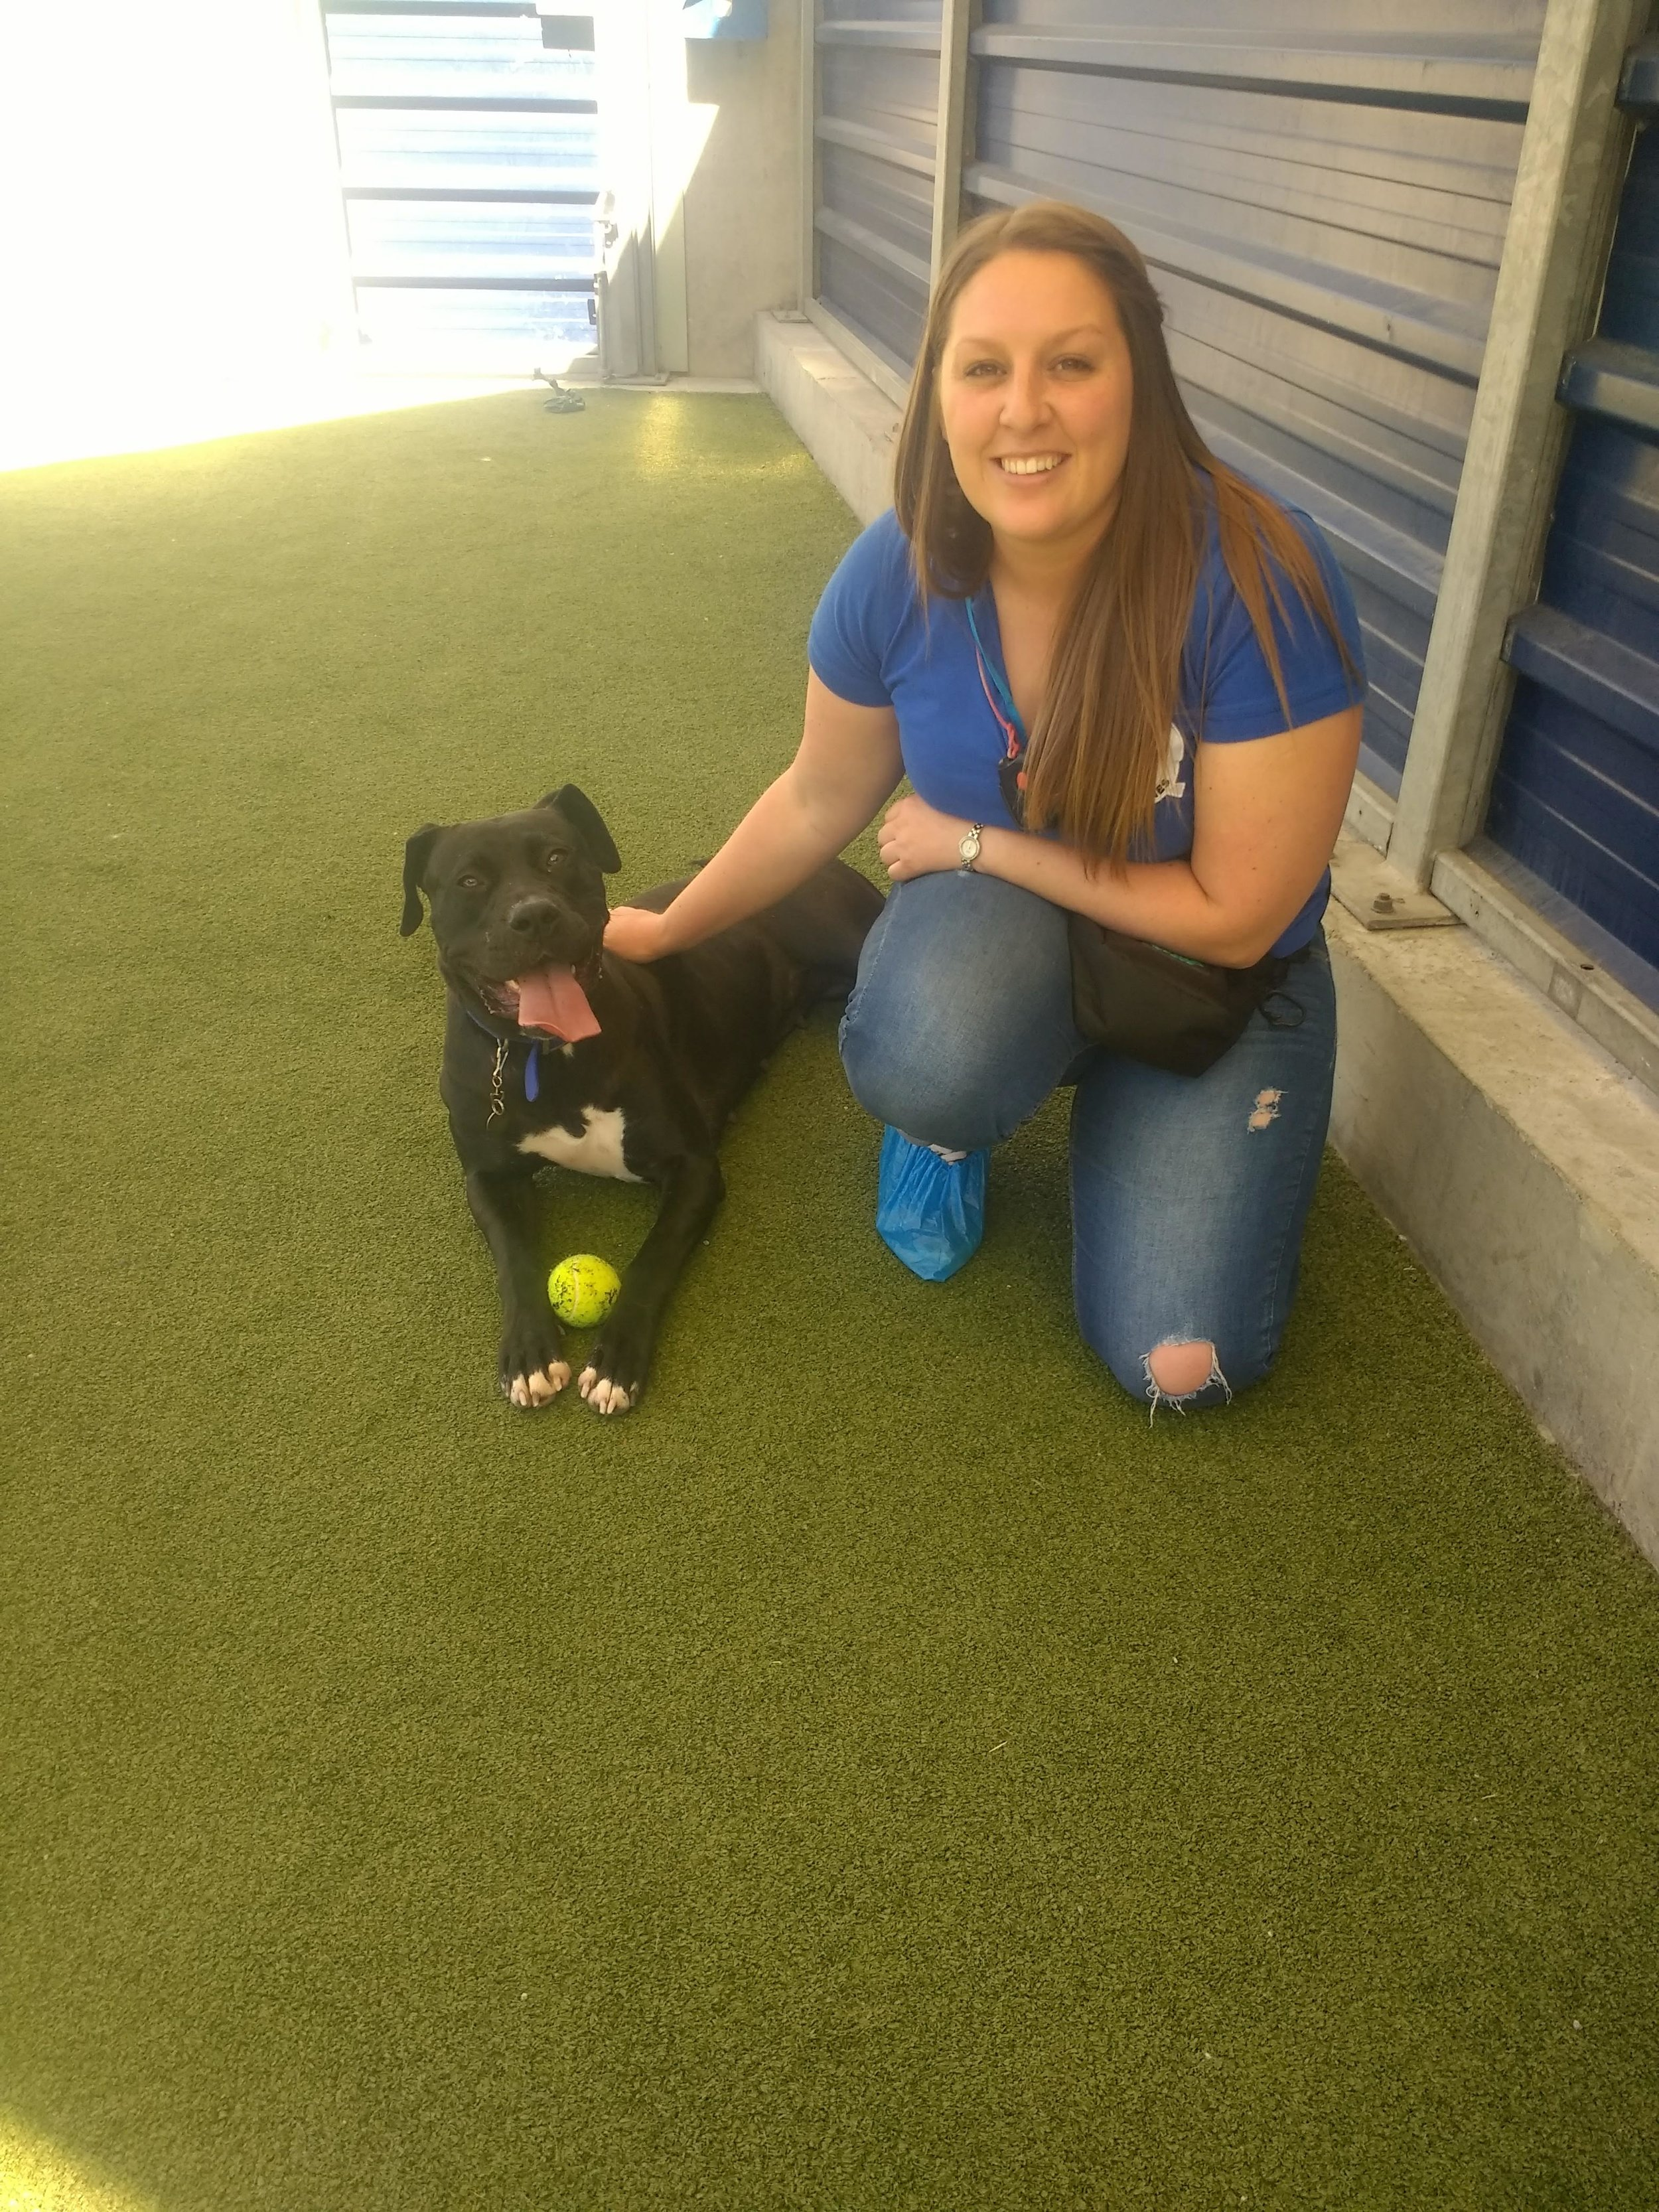 Me working with Bea at Battersea dogs home. This was on the 5th day. On the 1st day she was petrified of me and anyone new and would run away if anyone tried to go near her. She was shortly rehomed after this :)